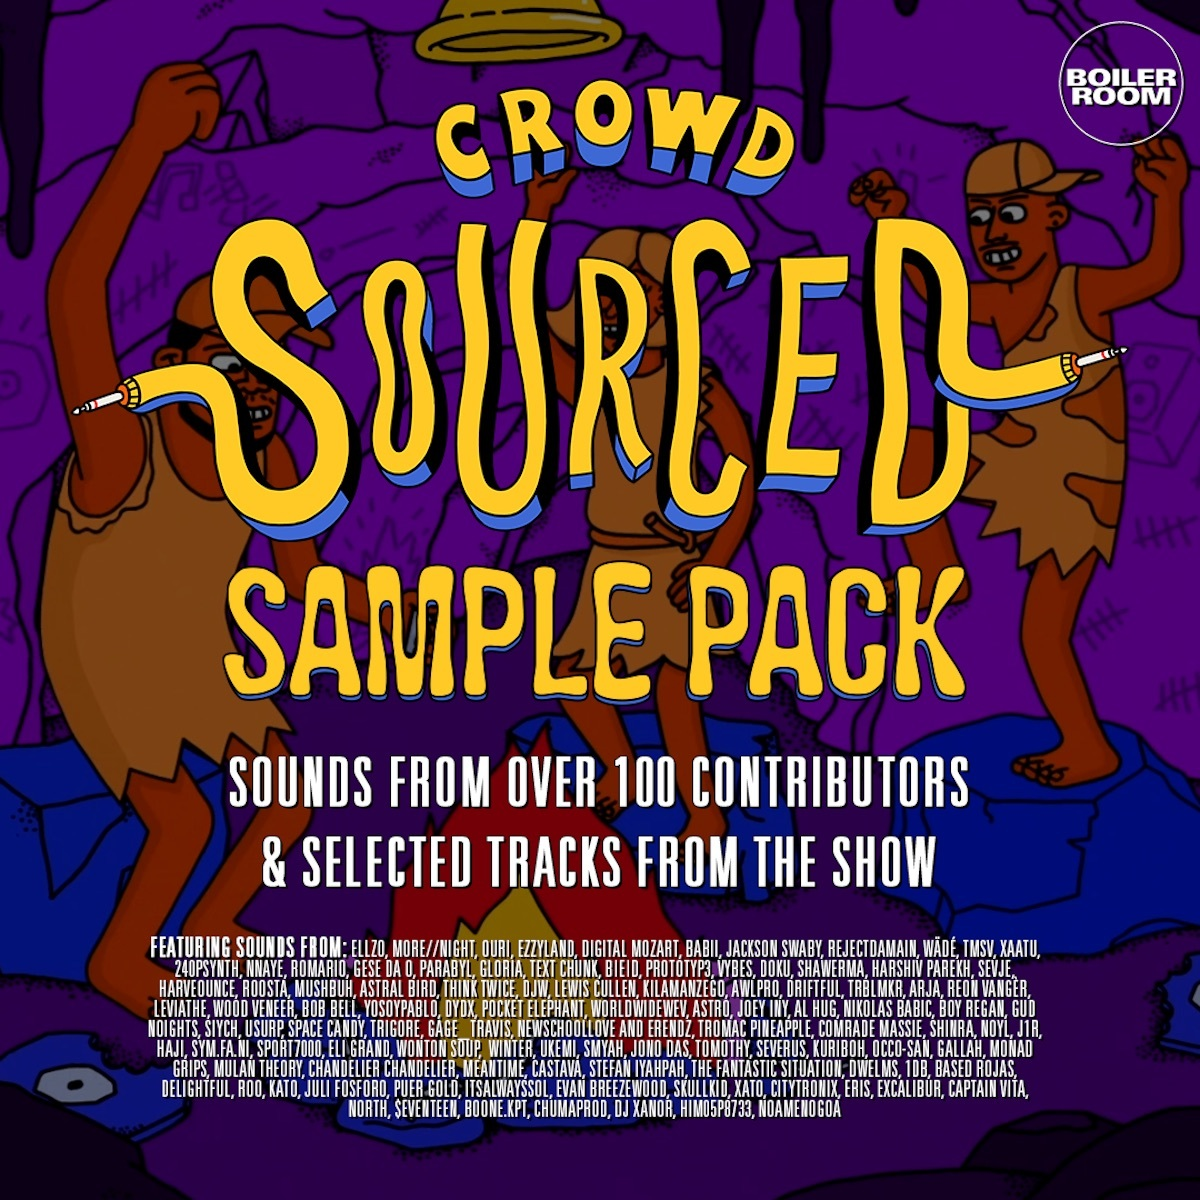 Boiler Room Have Supplied A 'Crowdsourced' Sample Pack For Aspiring Producers